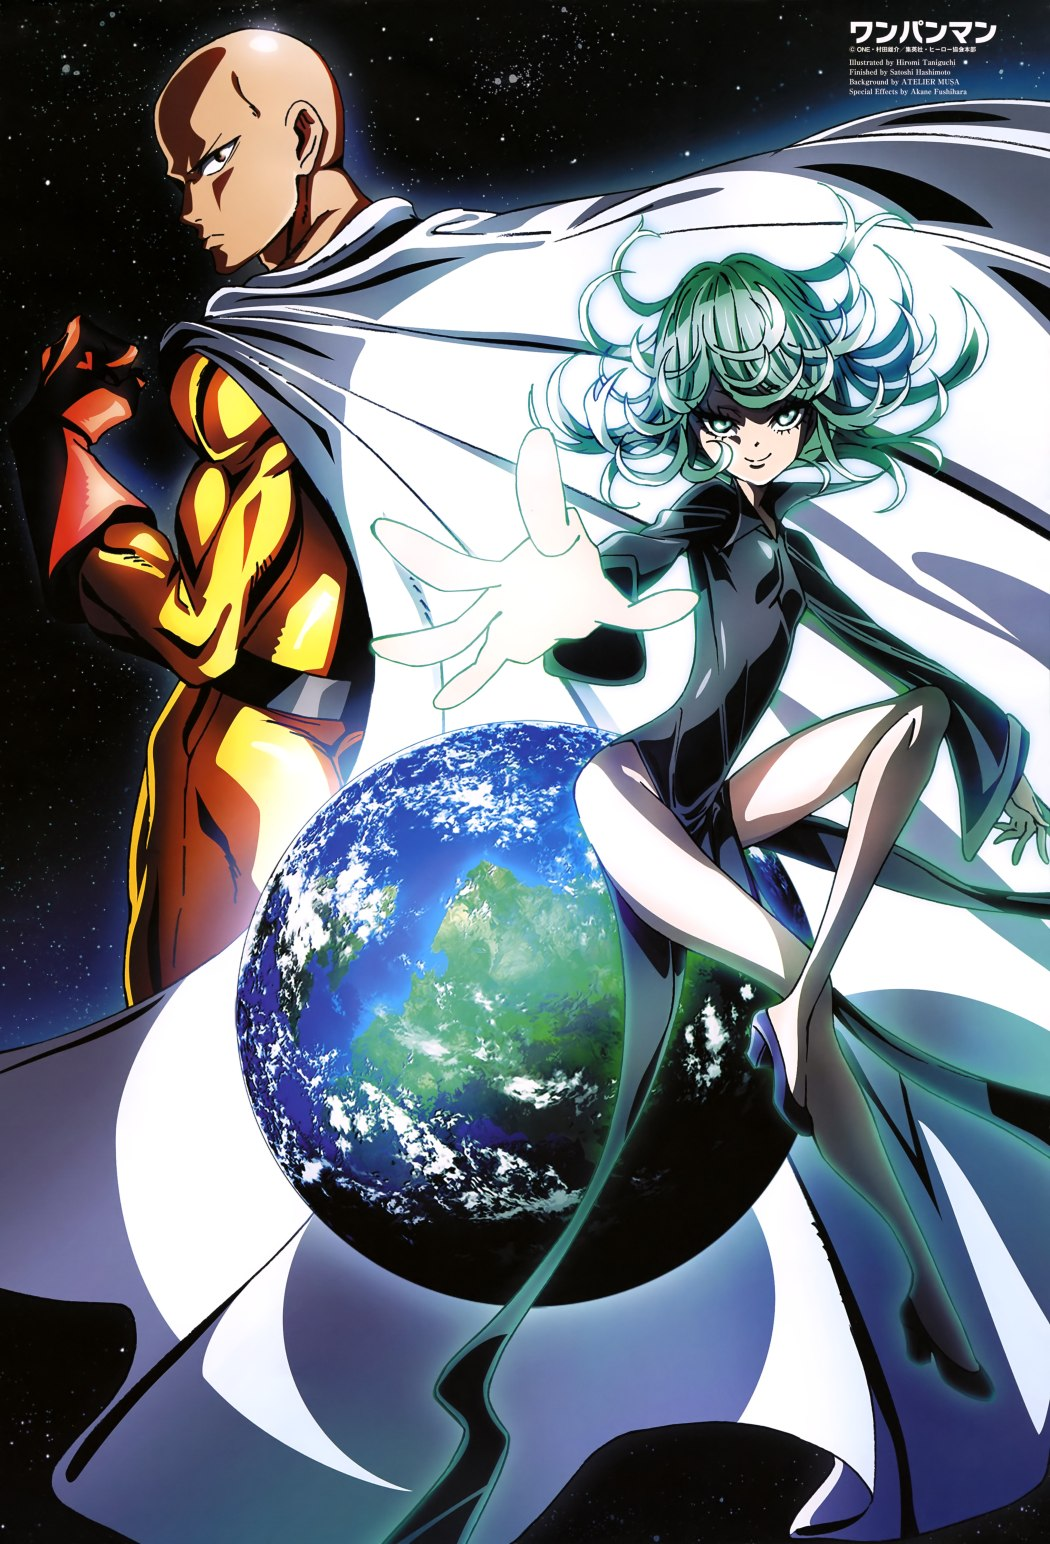 Fascinating Saitama and Tatsumaki Poster Revealed